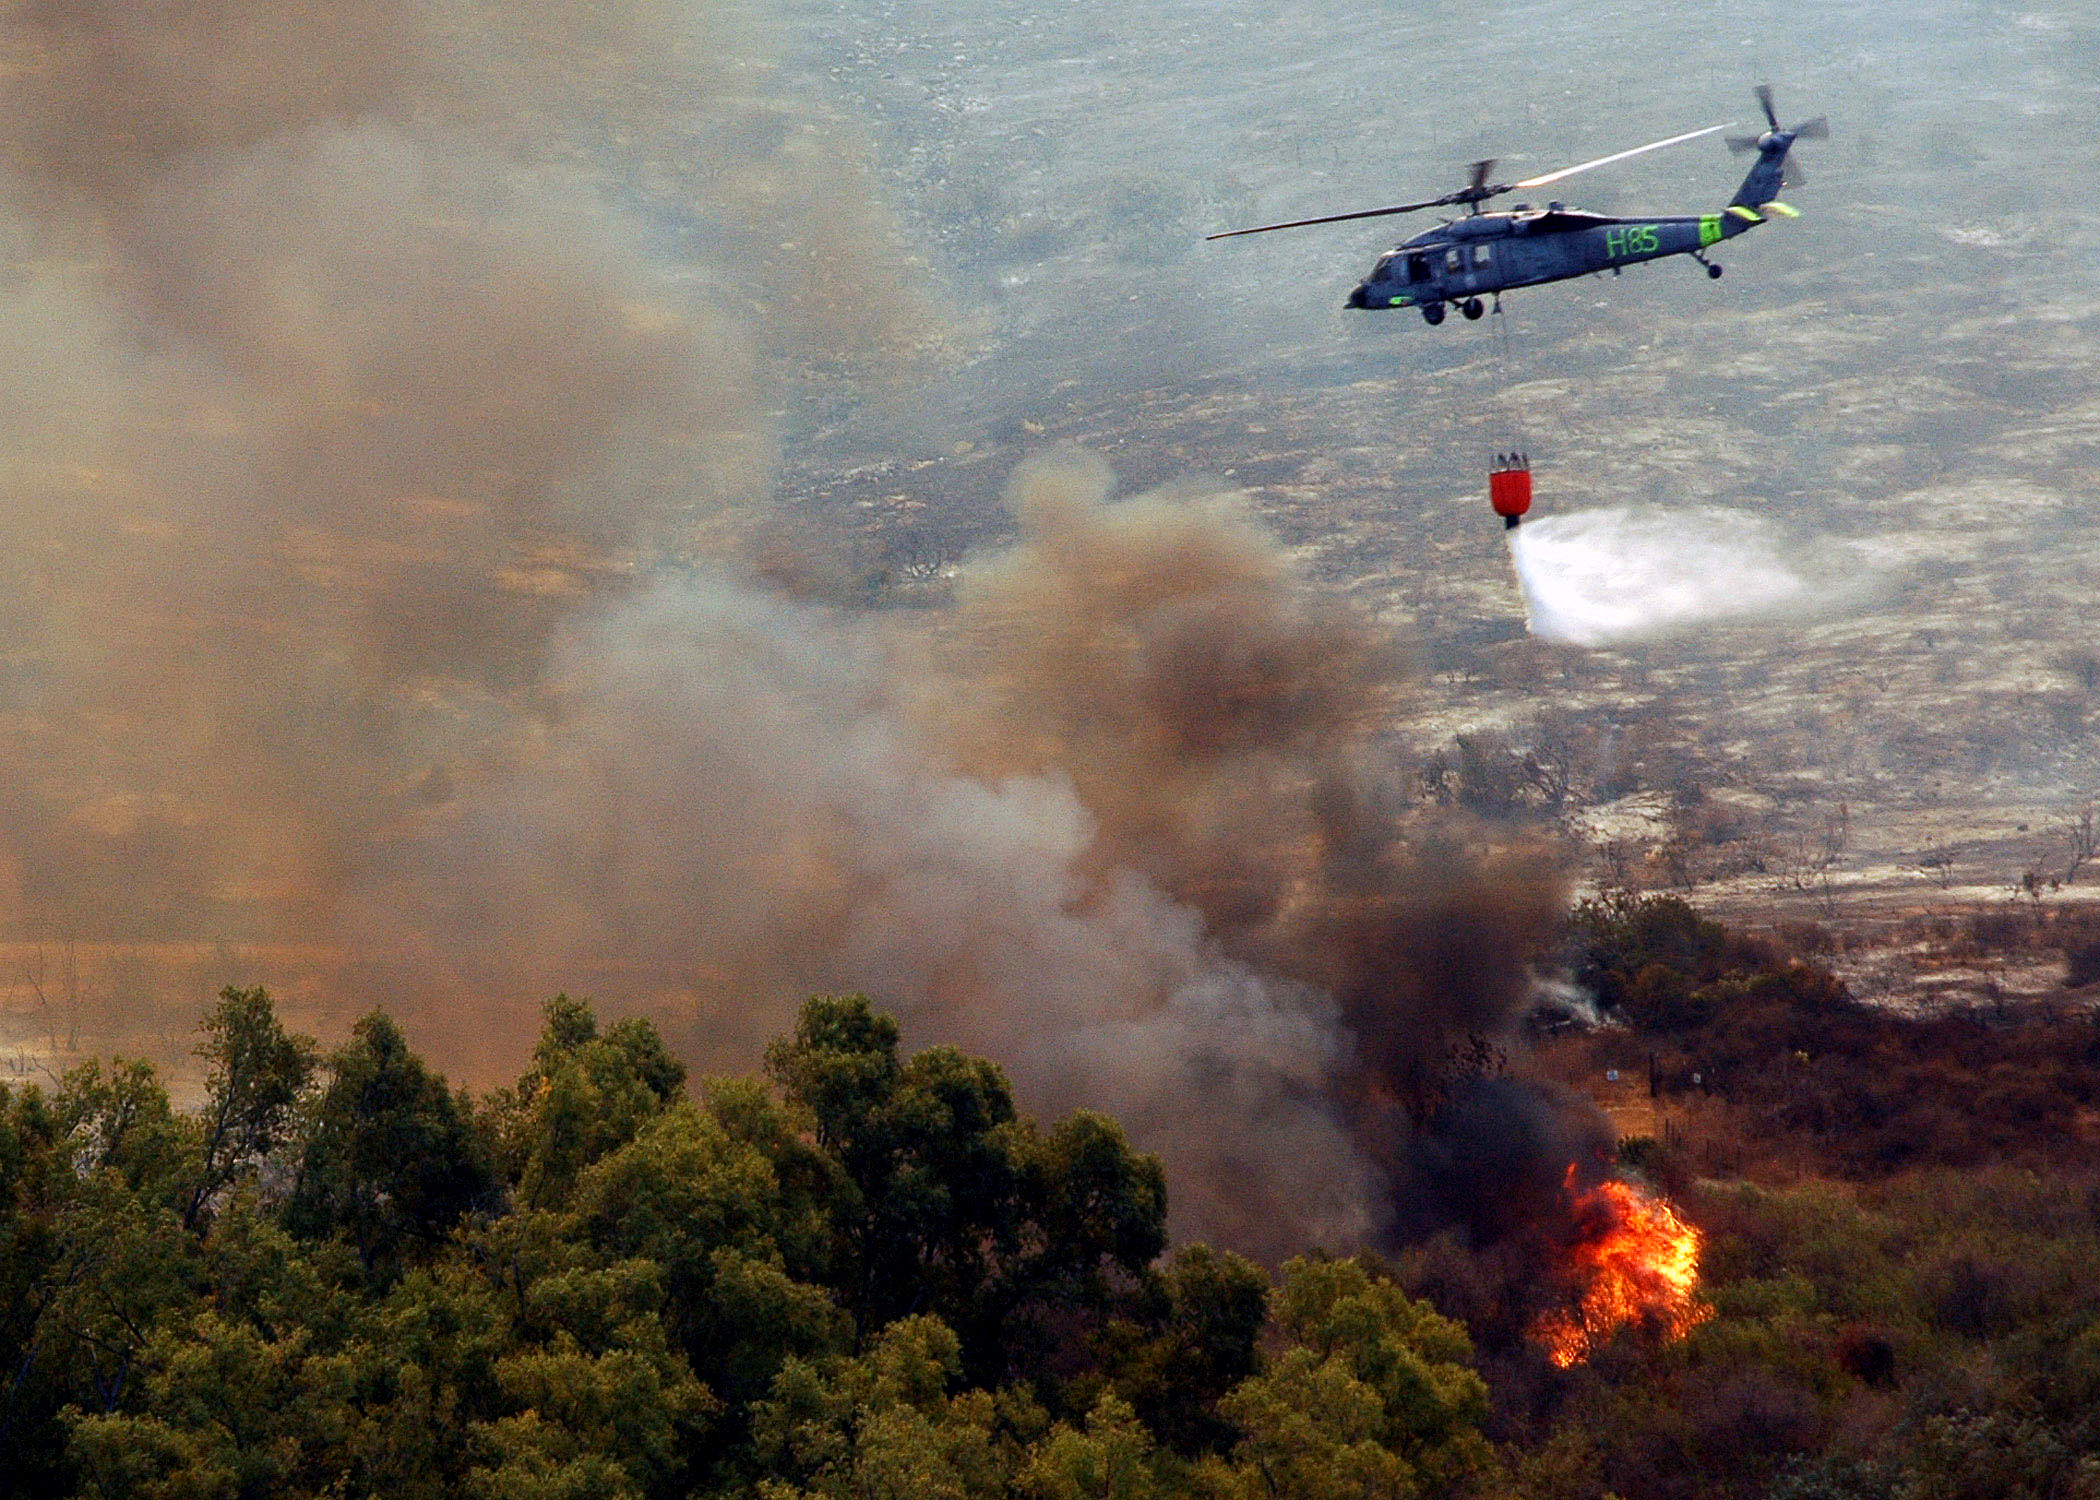 US_Navy_drops_water_from_a_helicopter-borne_firefighting_bucket.jpg